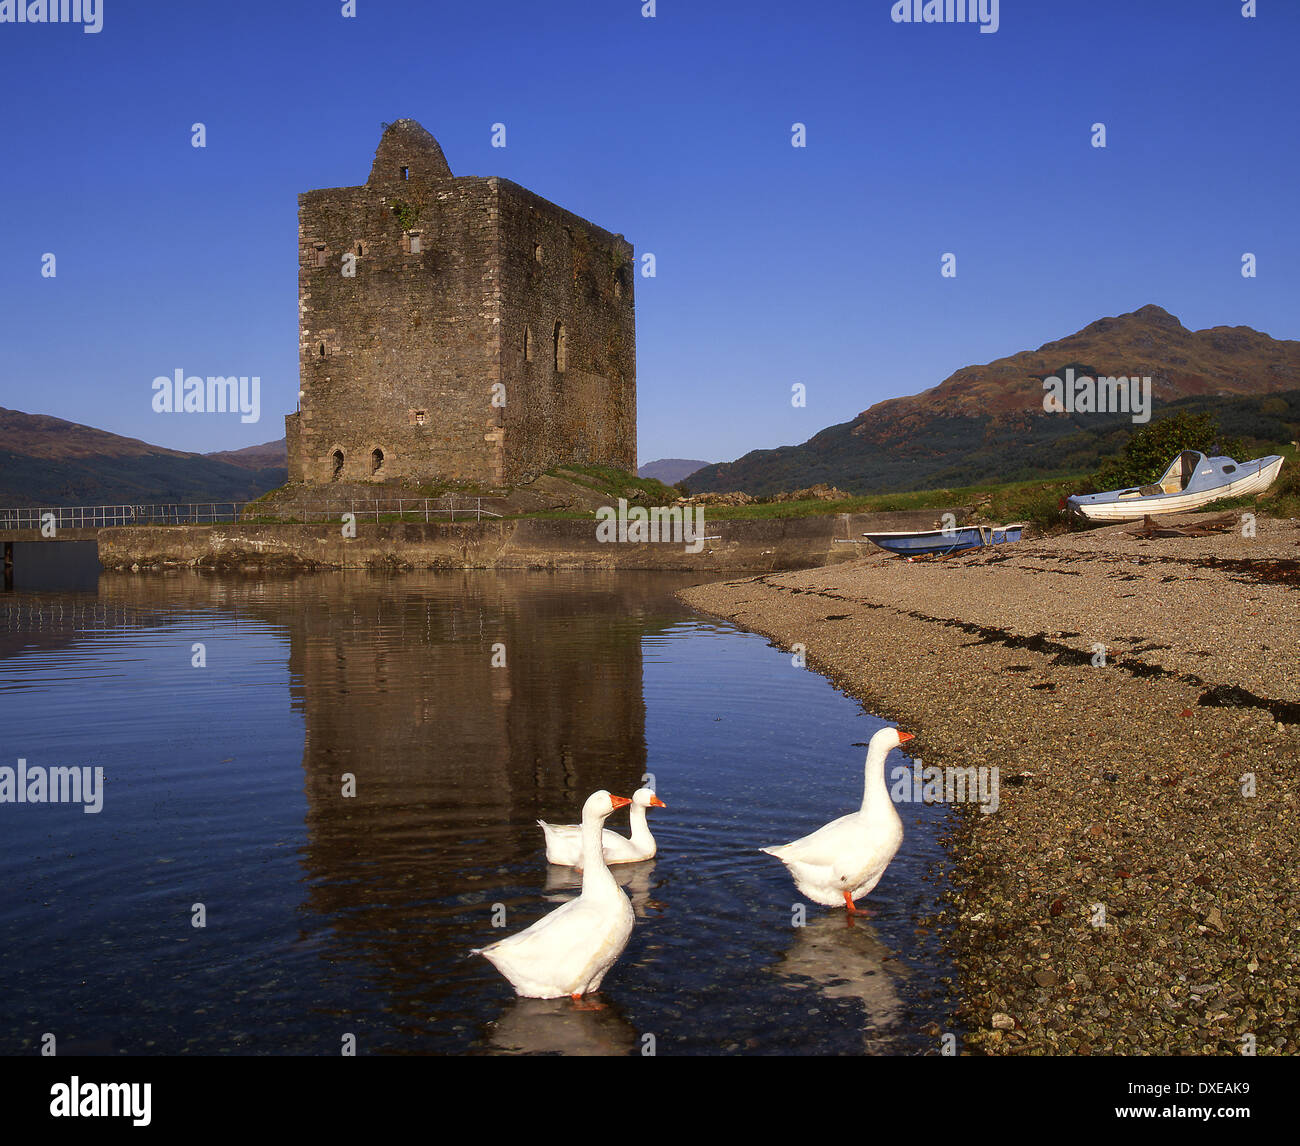 Carrick castle from the shore of Loch Goil,Argyll,Scotland.with Geese. Stock Photo